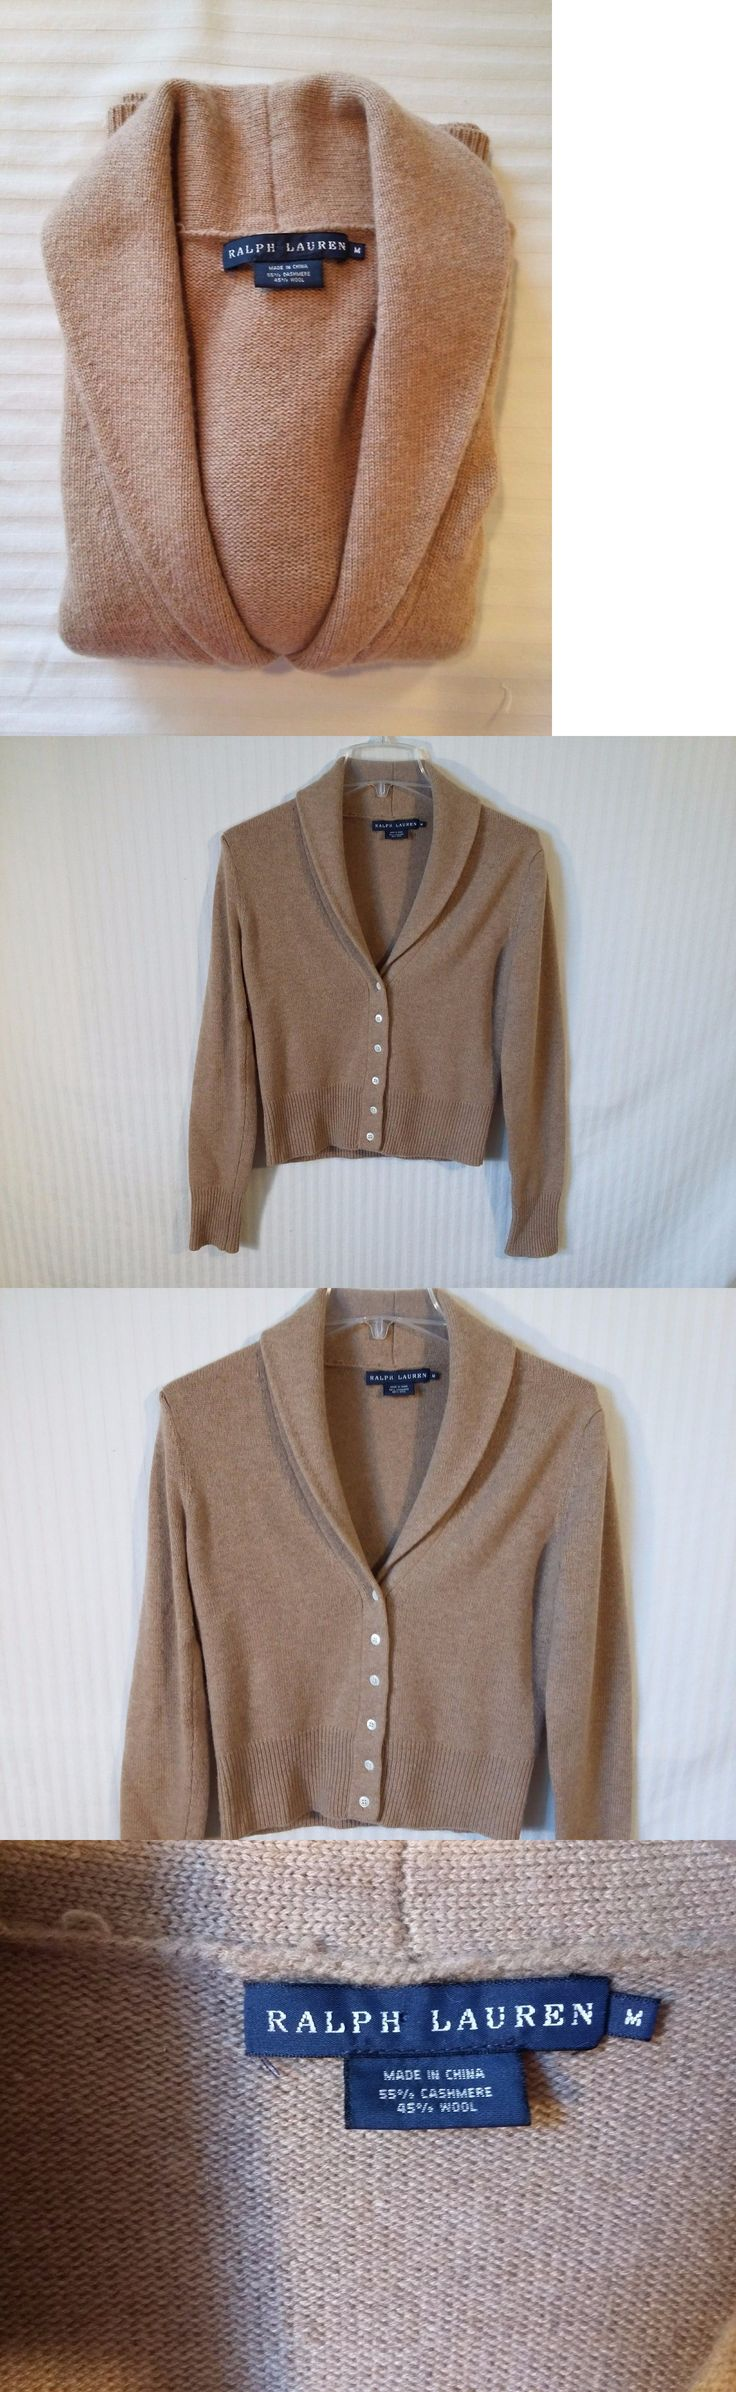 Sweaters 63866: Ralph Lauren M Cashmere Wool Blend Women S Brown Shawl Collar Cardigan Sweater -> BUY IT NOW ONLY: $59.99 on eBay!